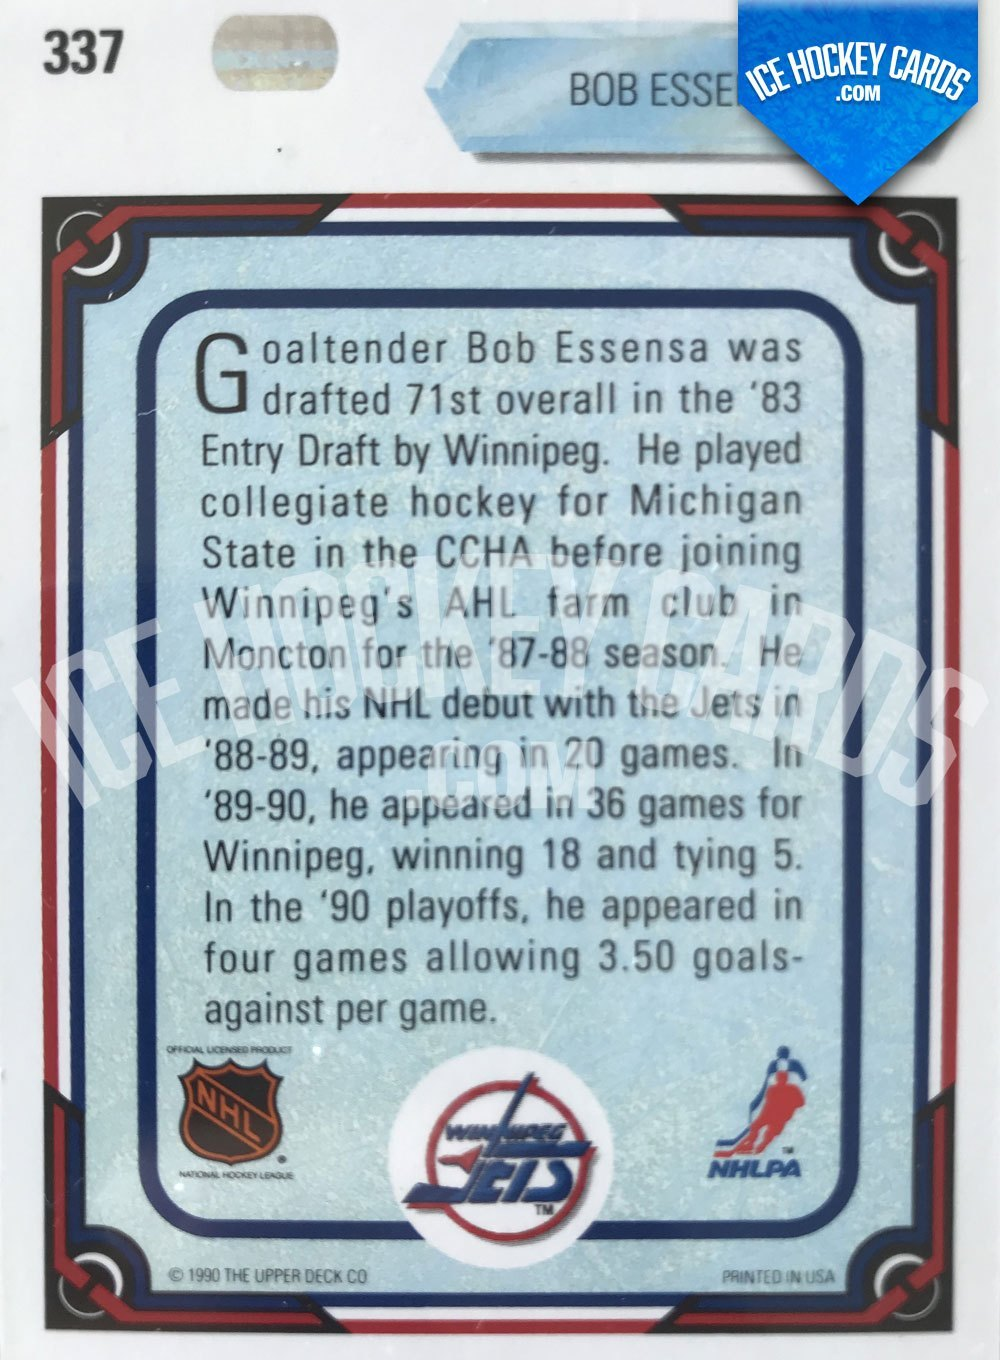 Upper Deck - 90-91 - Bob Essensa All Rookie Team Card back